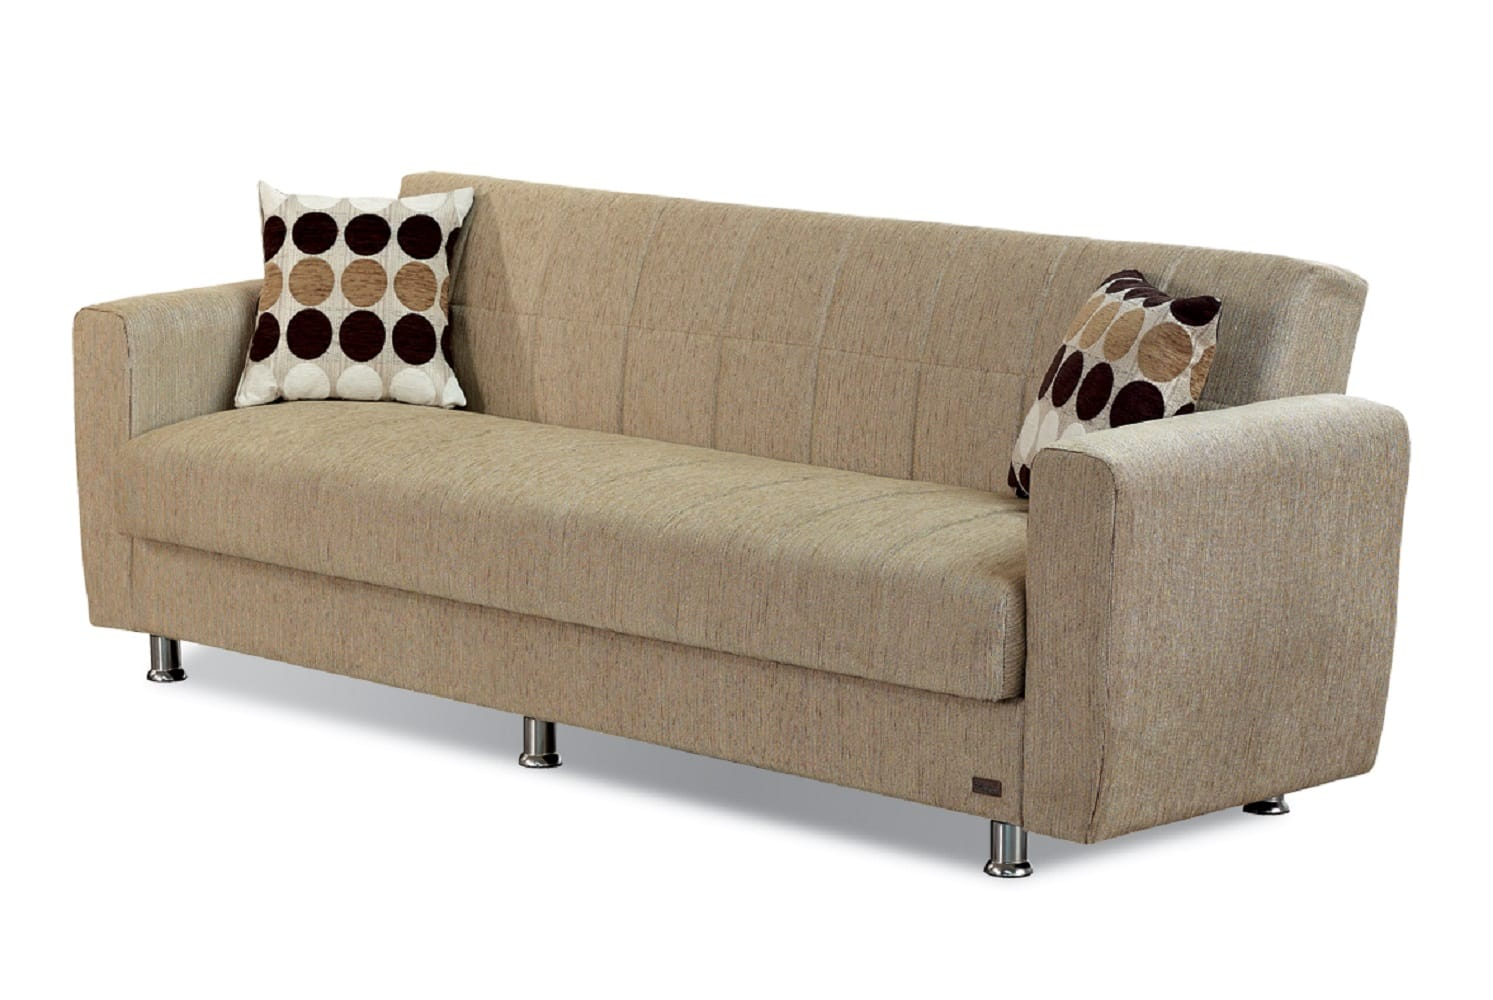 Astoria Light Brown Fabric Sofa Bed By